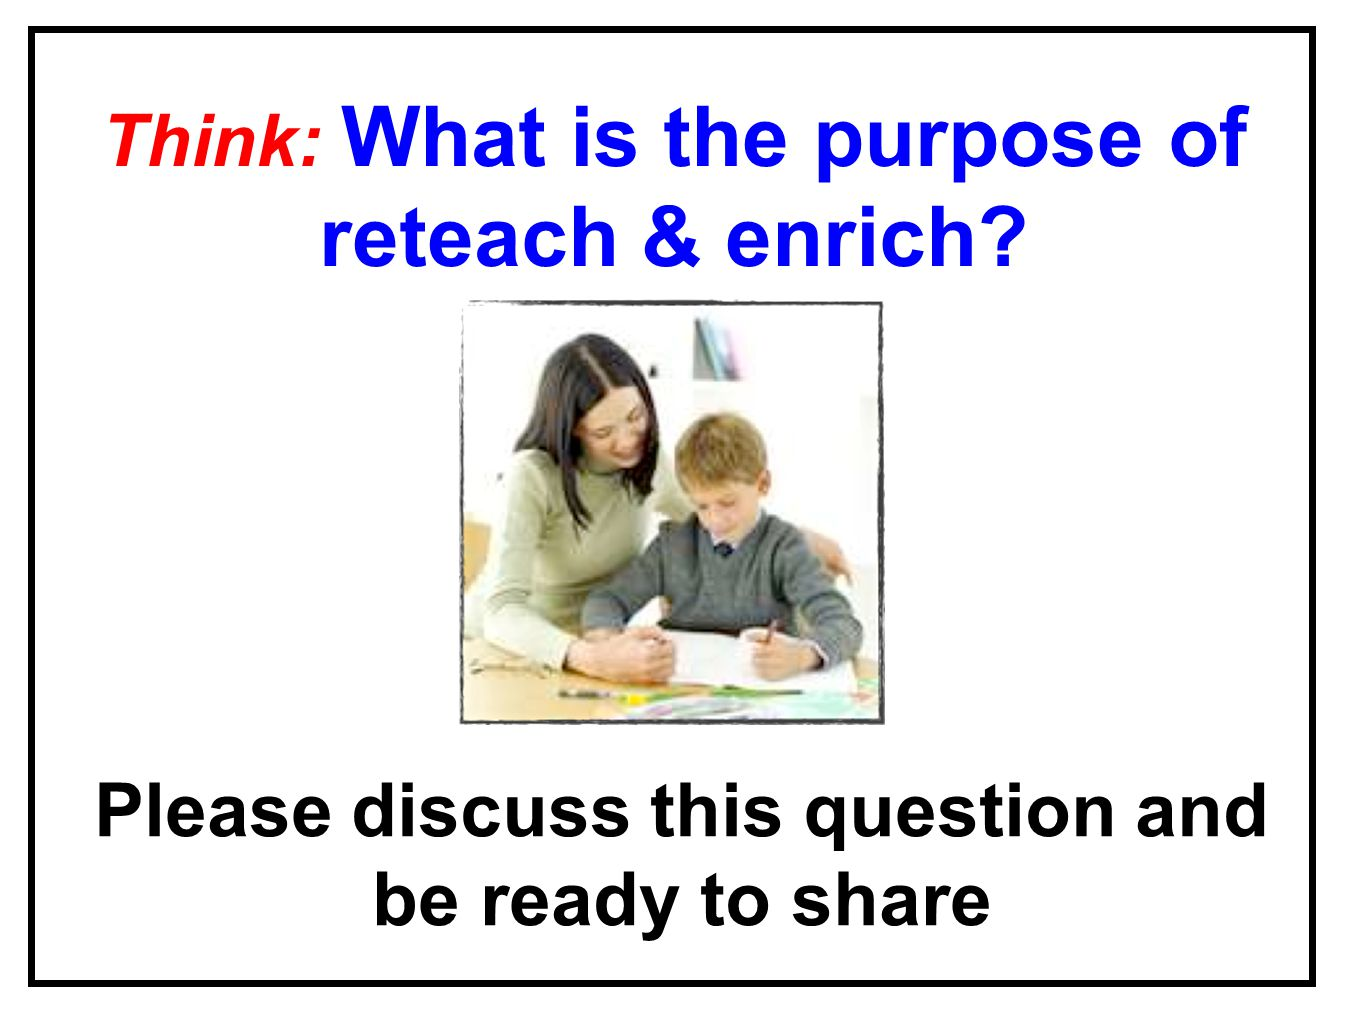 Please discuss this question and be ready to share Think: What is the purpose of reteach & enrich?